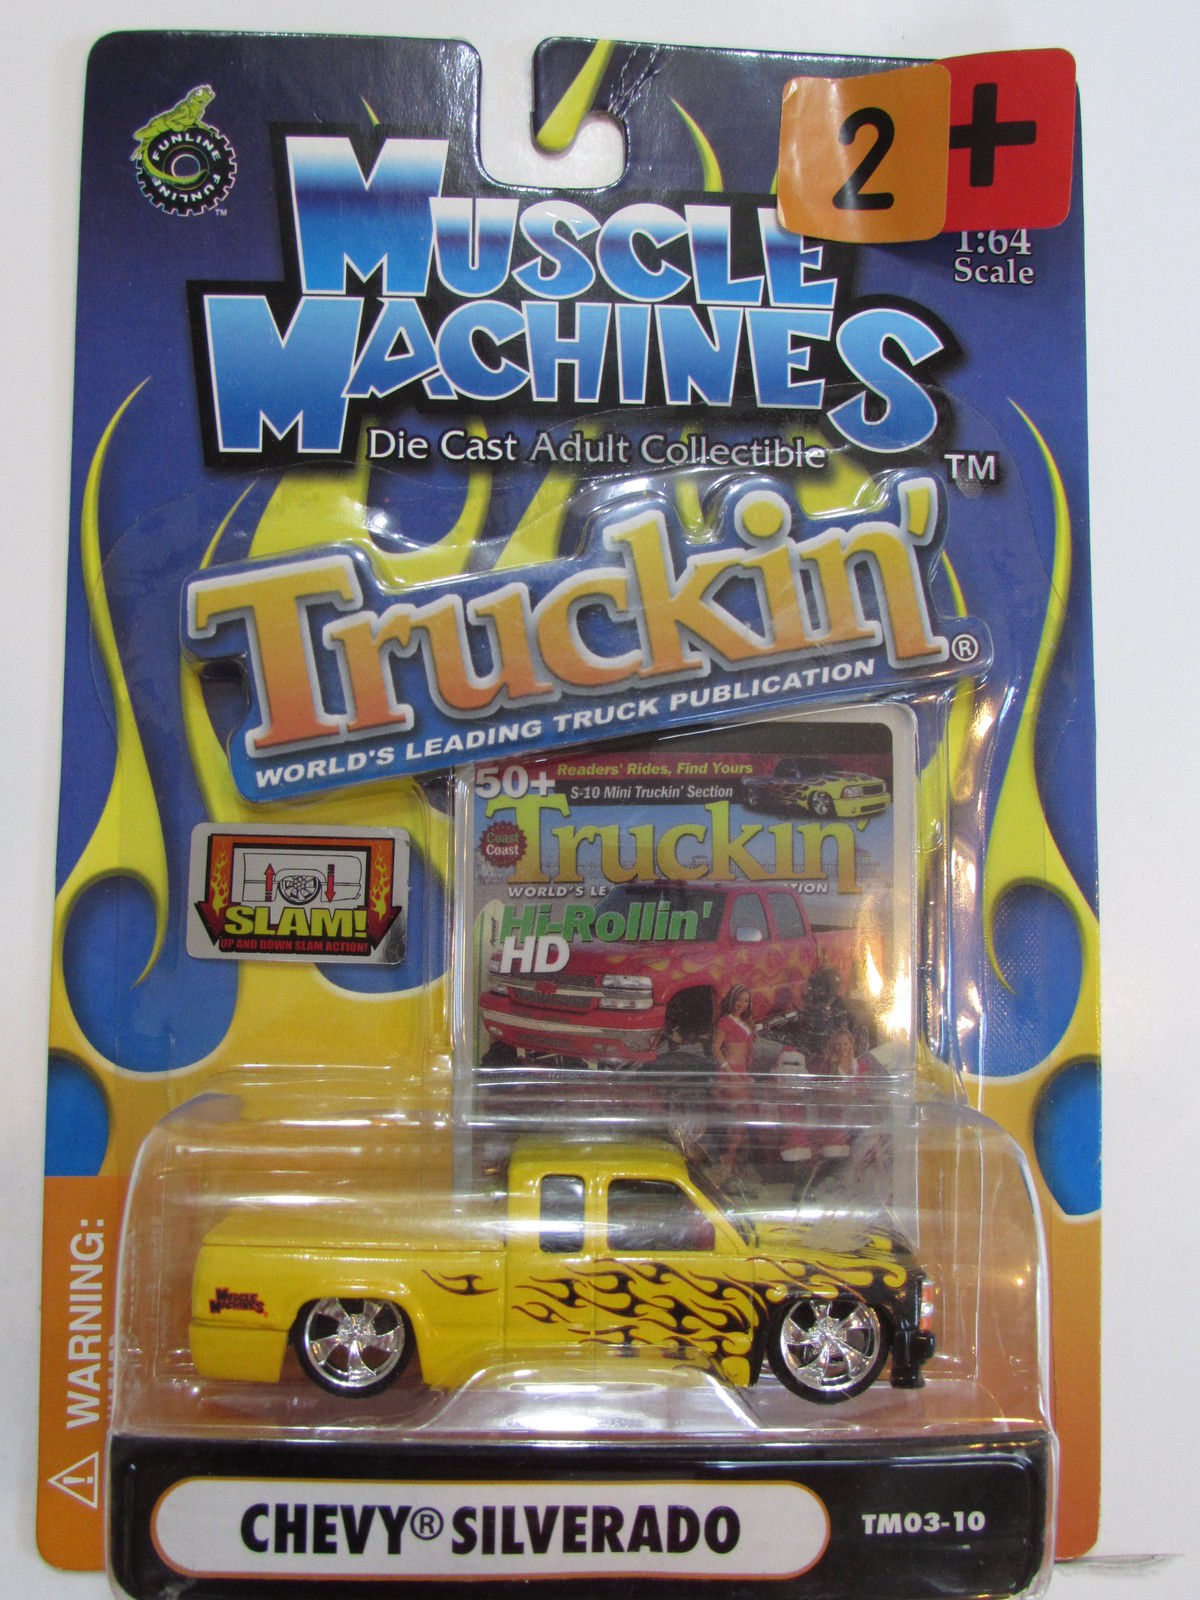 MUSCLE MACHINES TRUCKIN' CHEVY SILVERADO SCALE 1:64